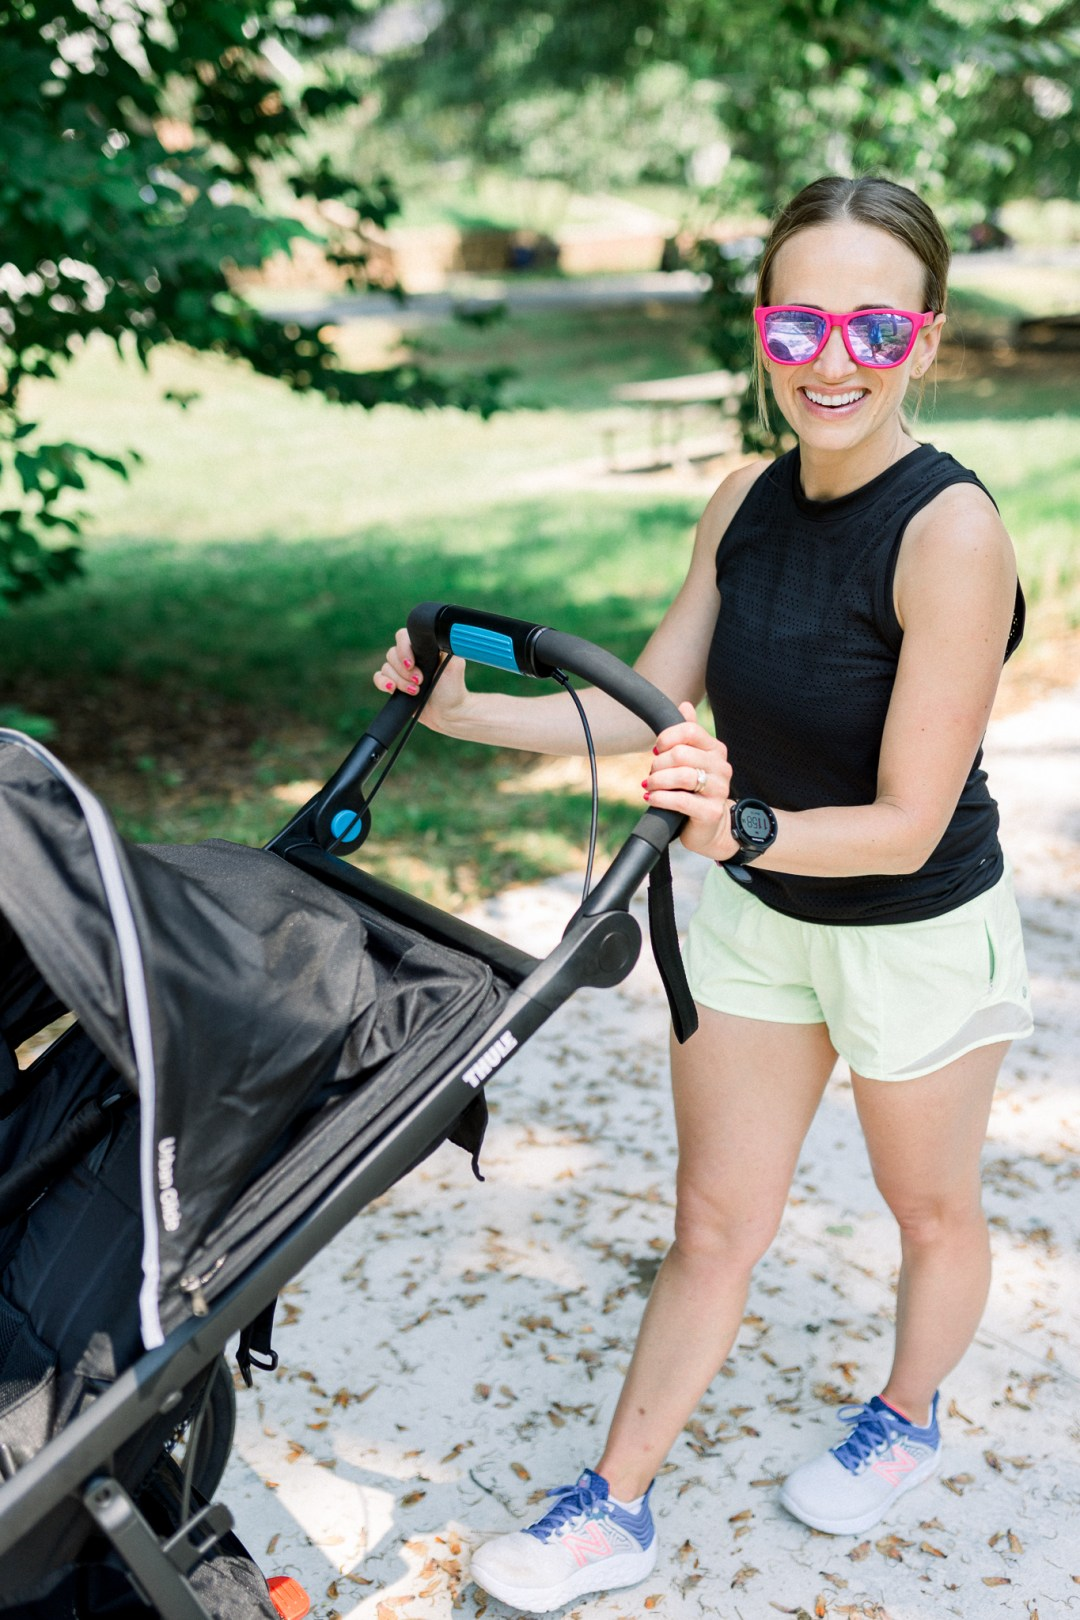 Thule Urban Glide 2 Jogging Stroller pros and cons